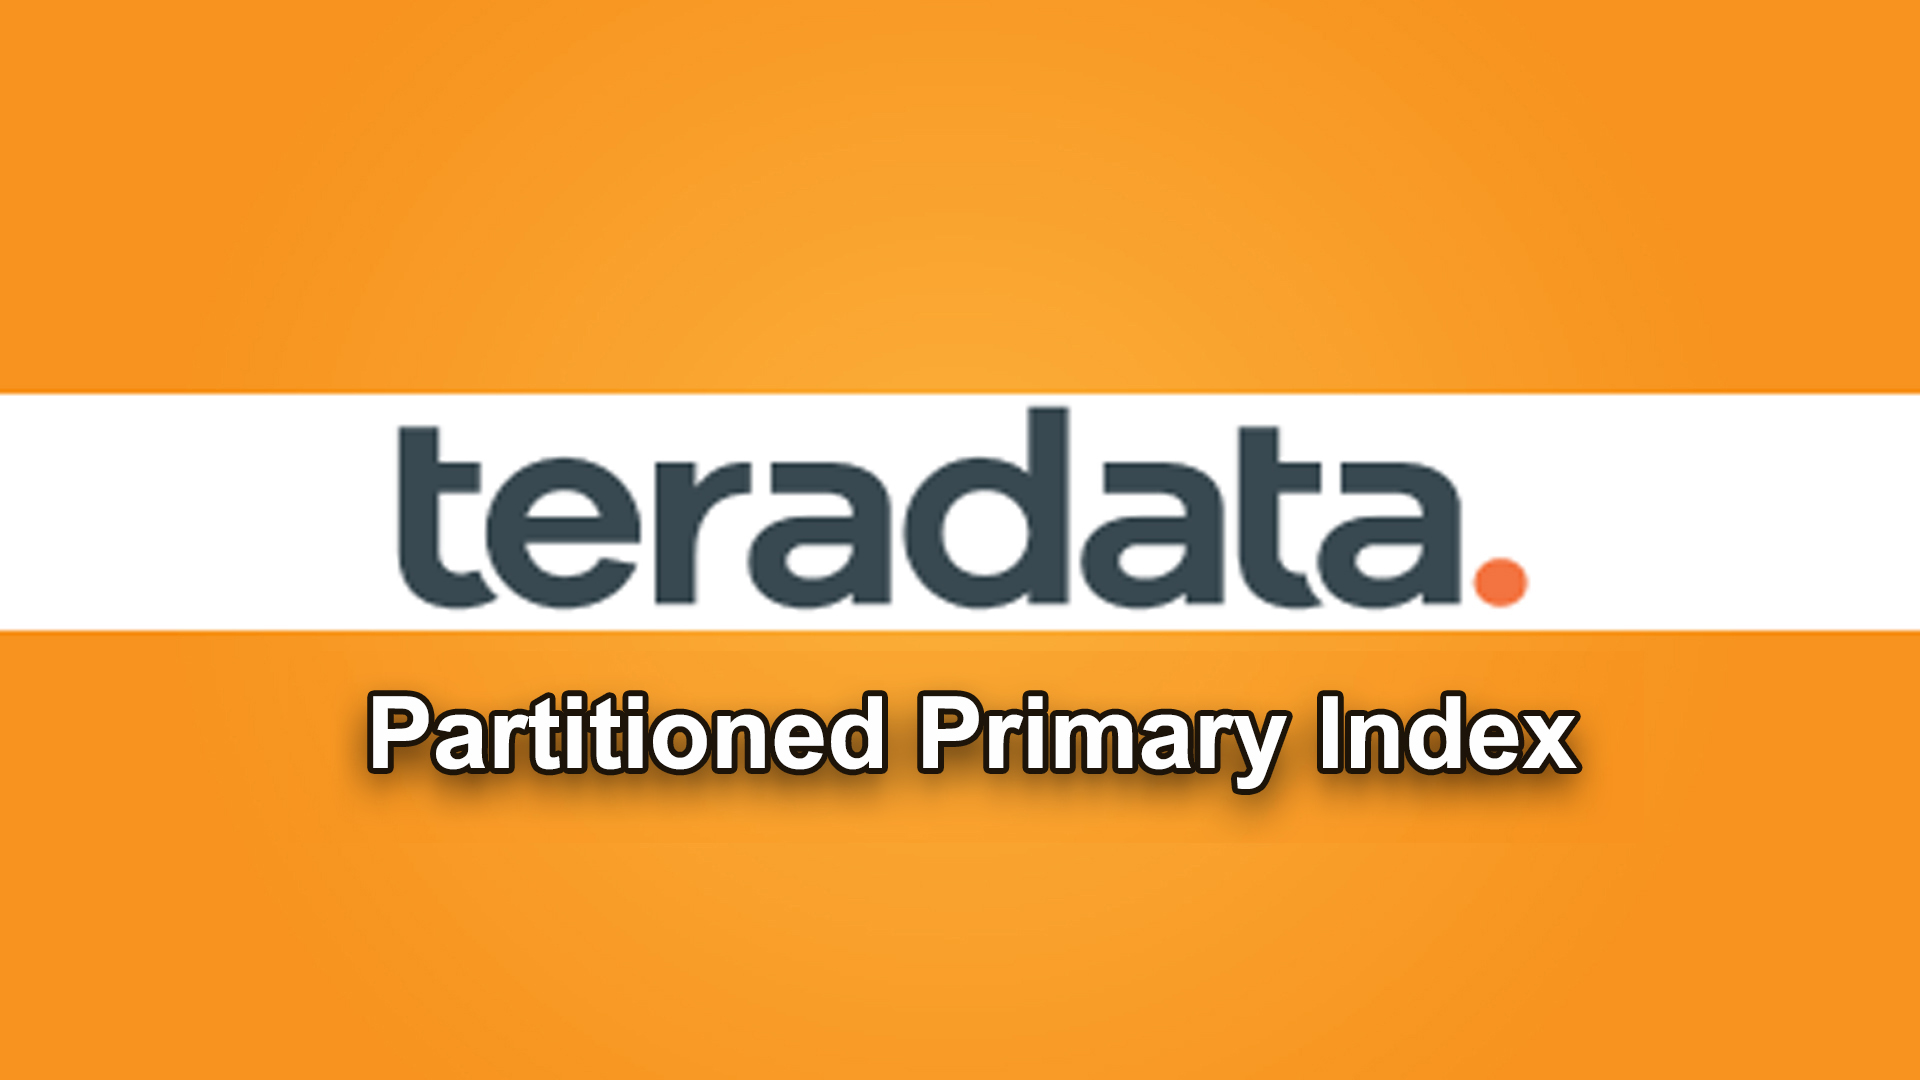 Partitioned Primary Index in Teradata